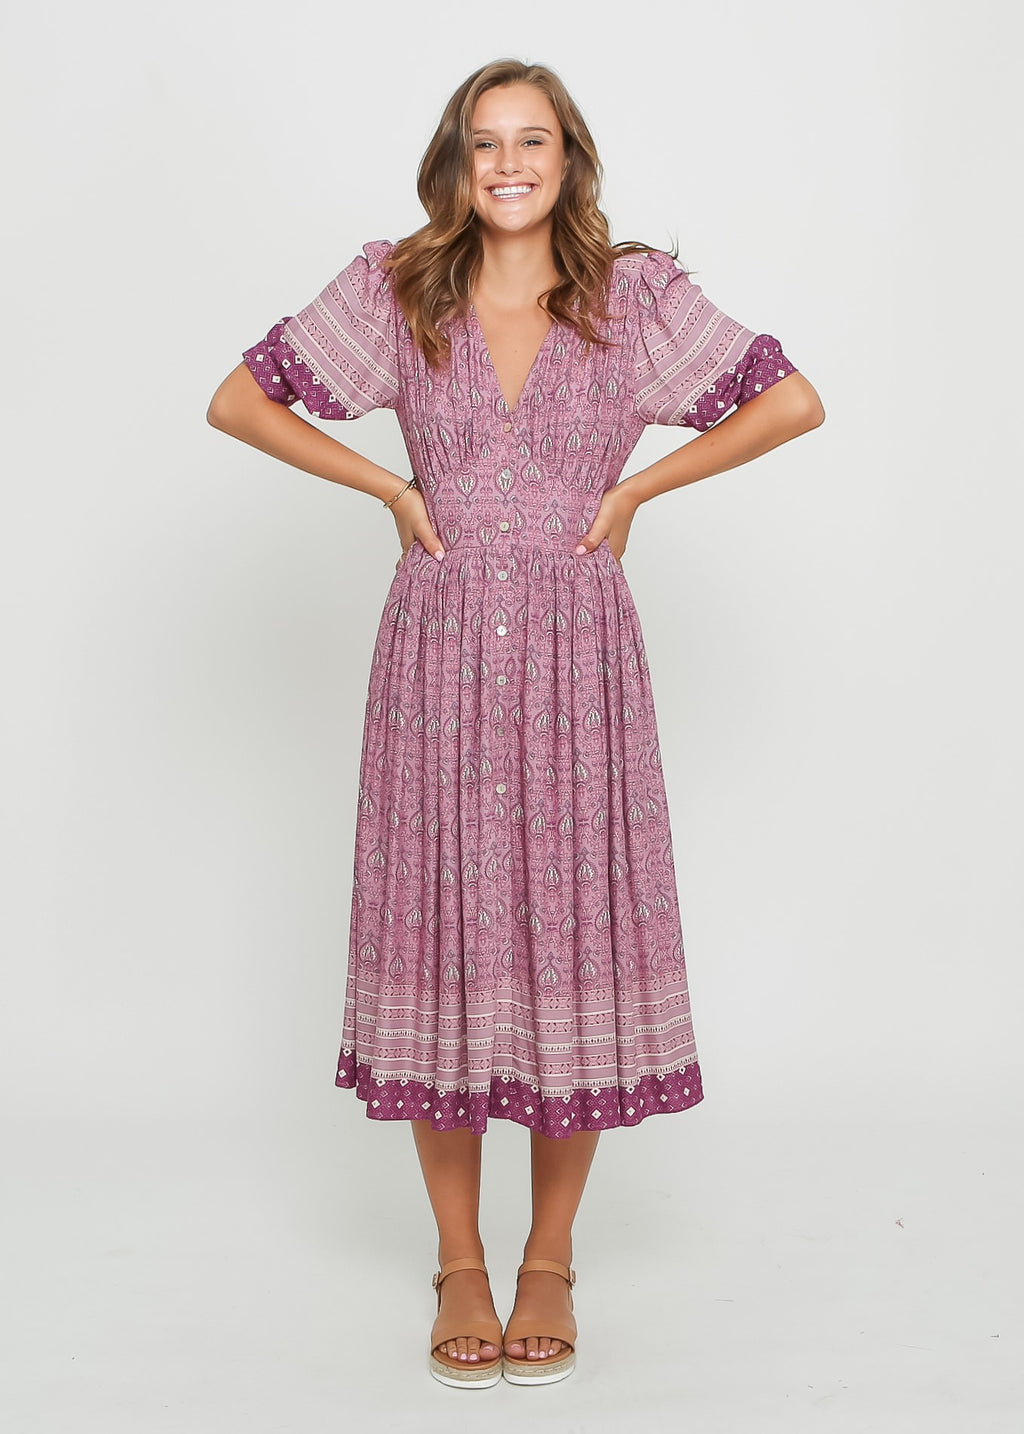 SOPHIE BOHO DRESS - PURPLE FLOARL